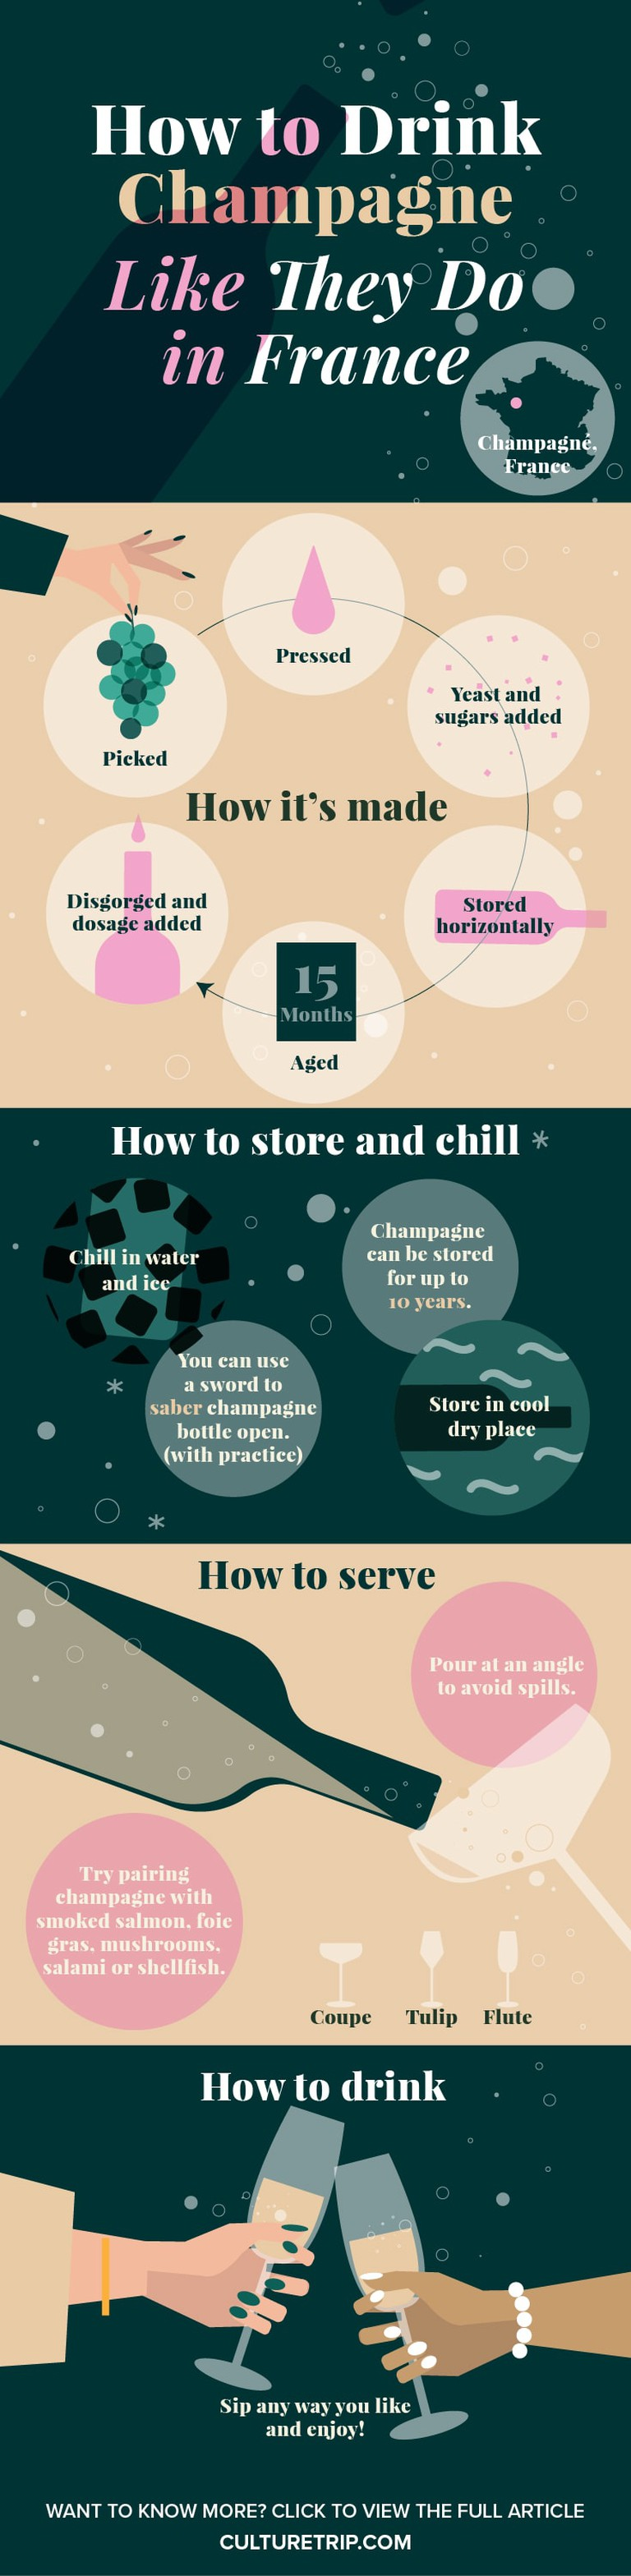 An infographic based on how to drink champagne like they do in France.